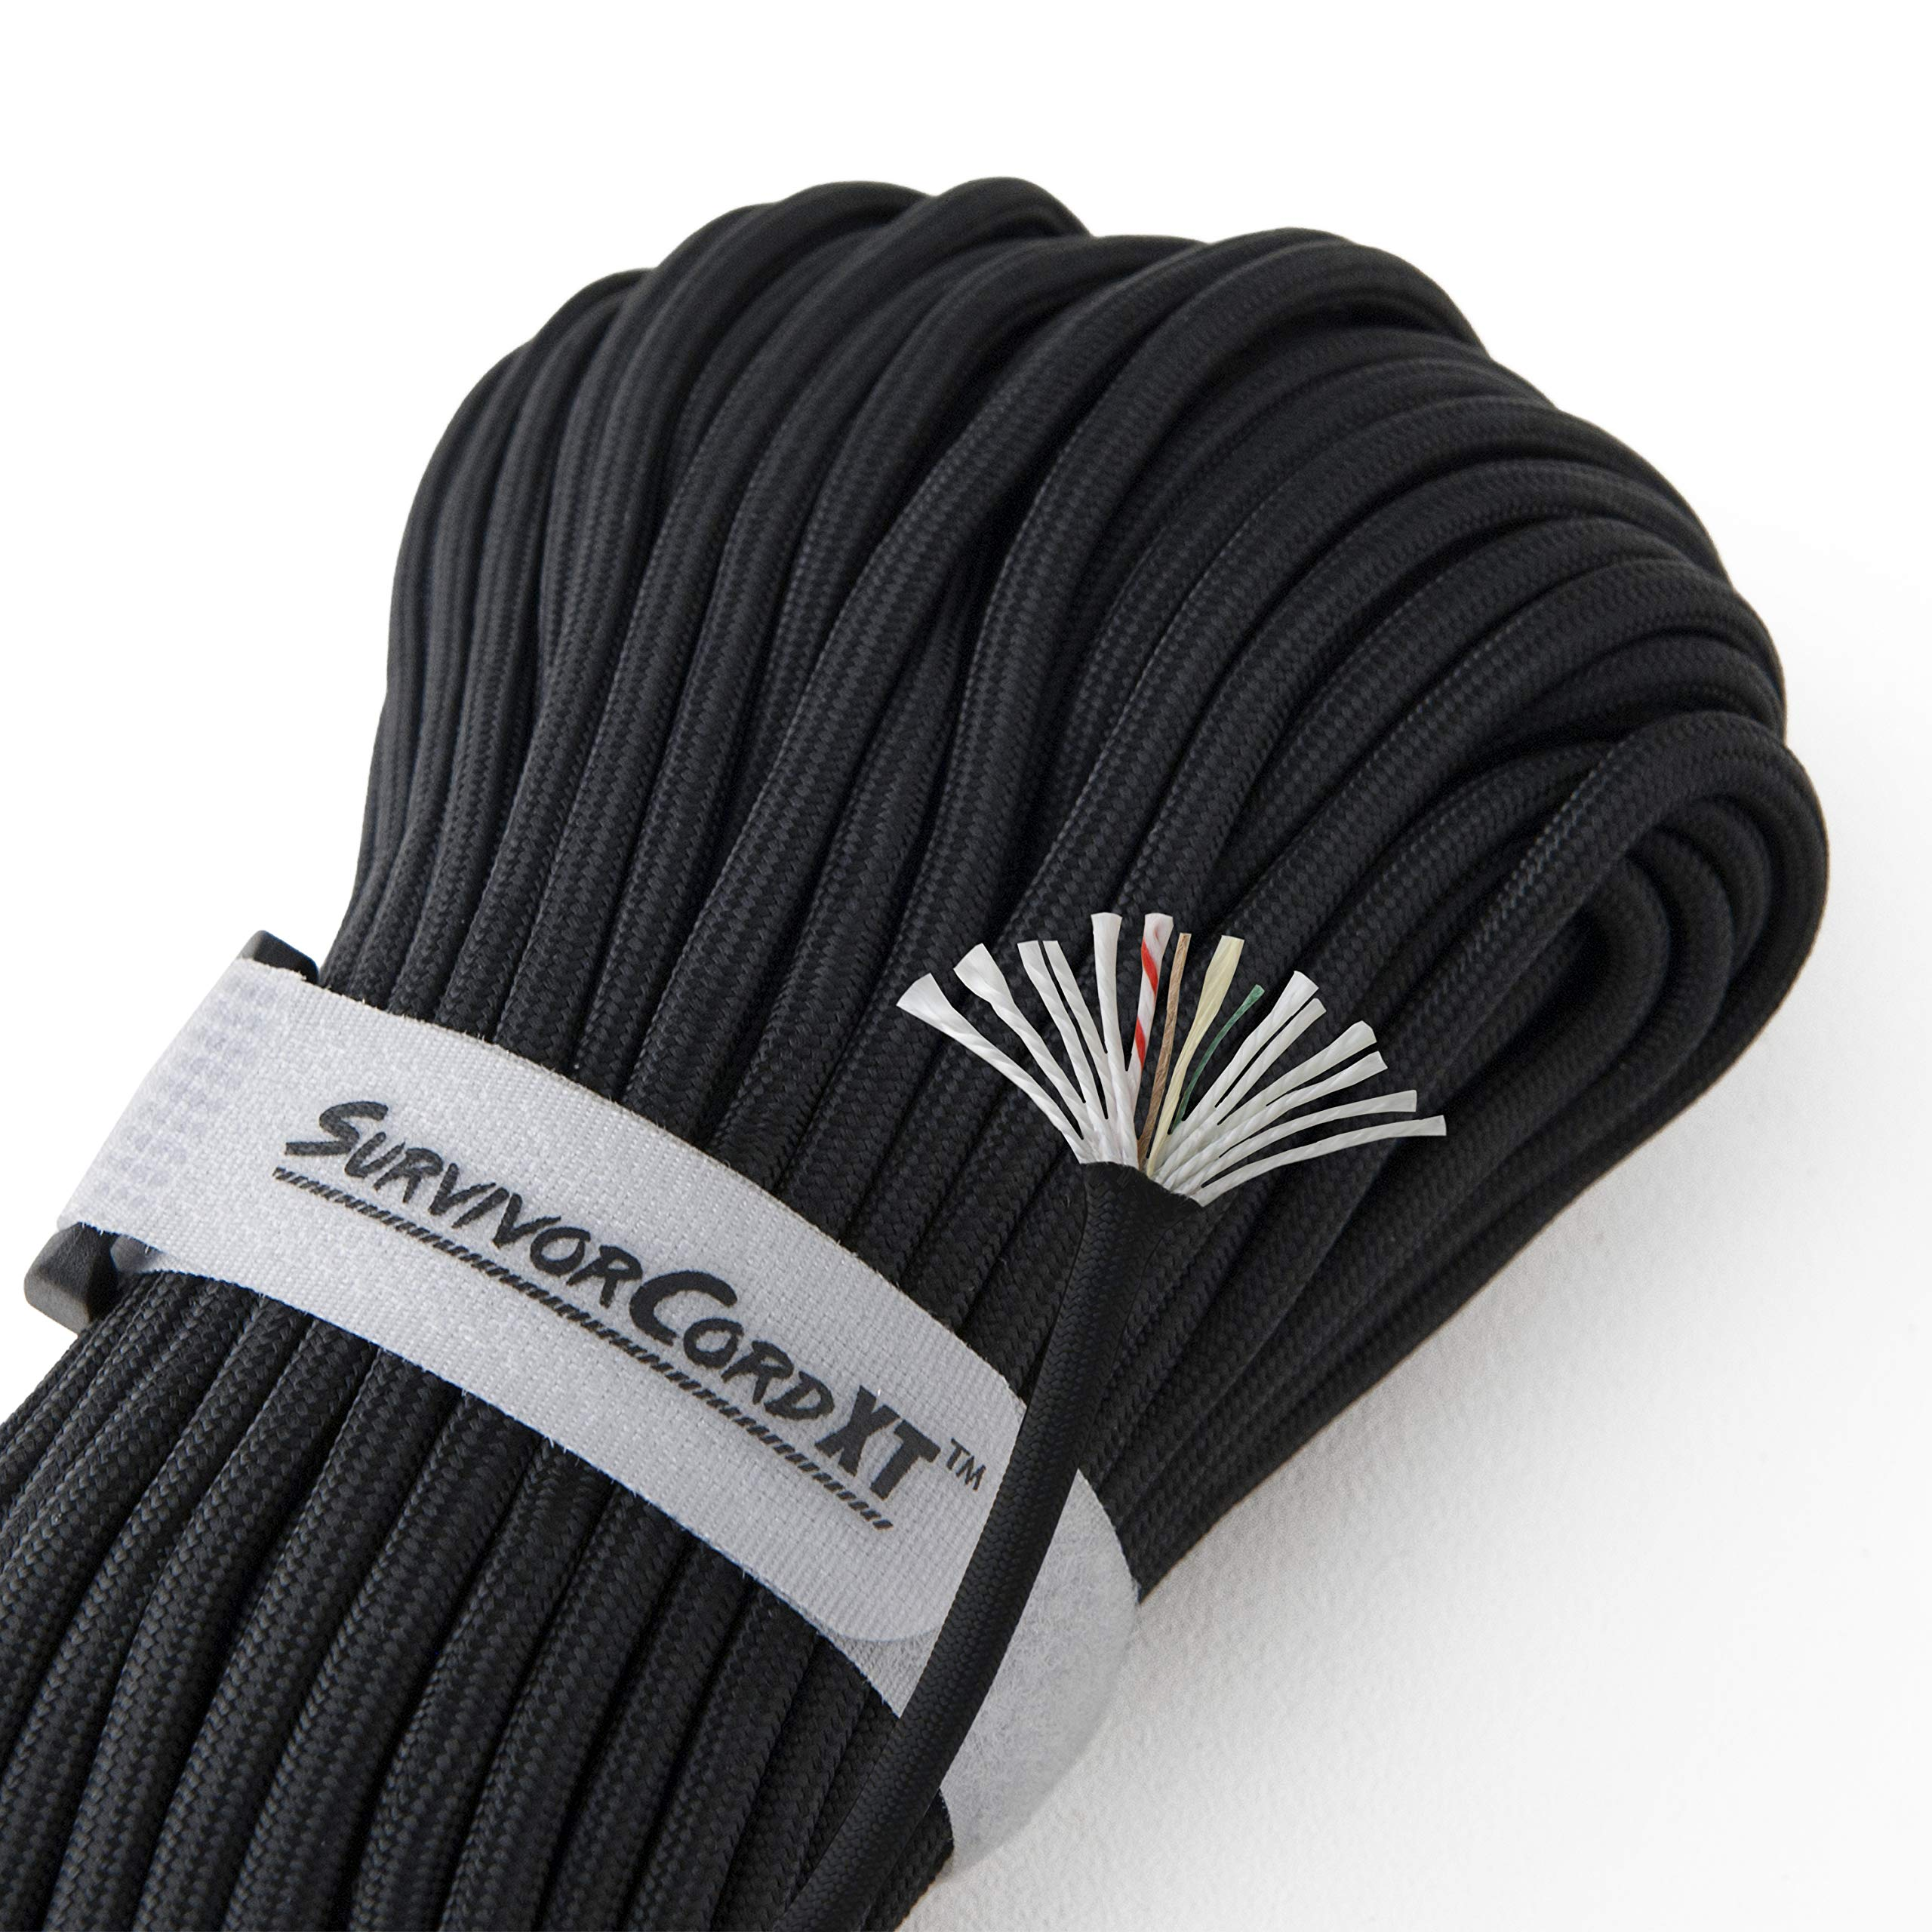 1,000 LB SurvivorCord XT | Black, 103 FEET | Patented Military Type IV 750 Paracord/Parachute Cord (7/32'' Diameter) with Integrated Kevlar Thread, Braided Fishing Line, and Waterproof Fire Tinder.